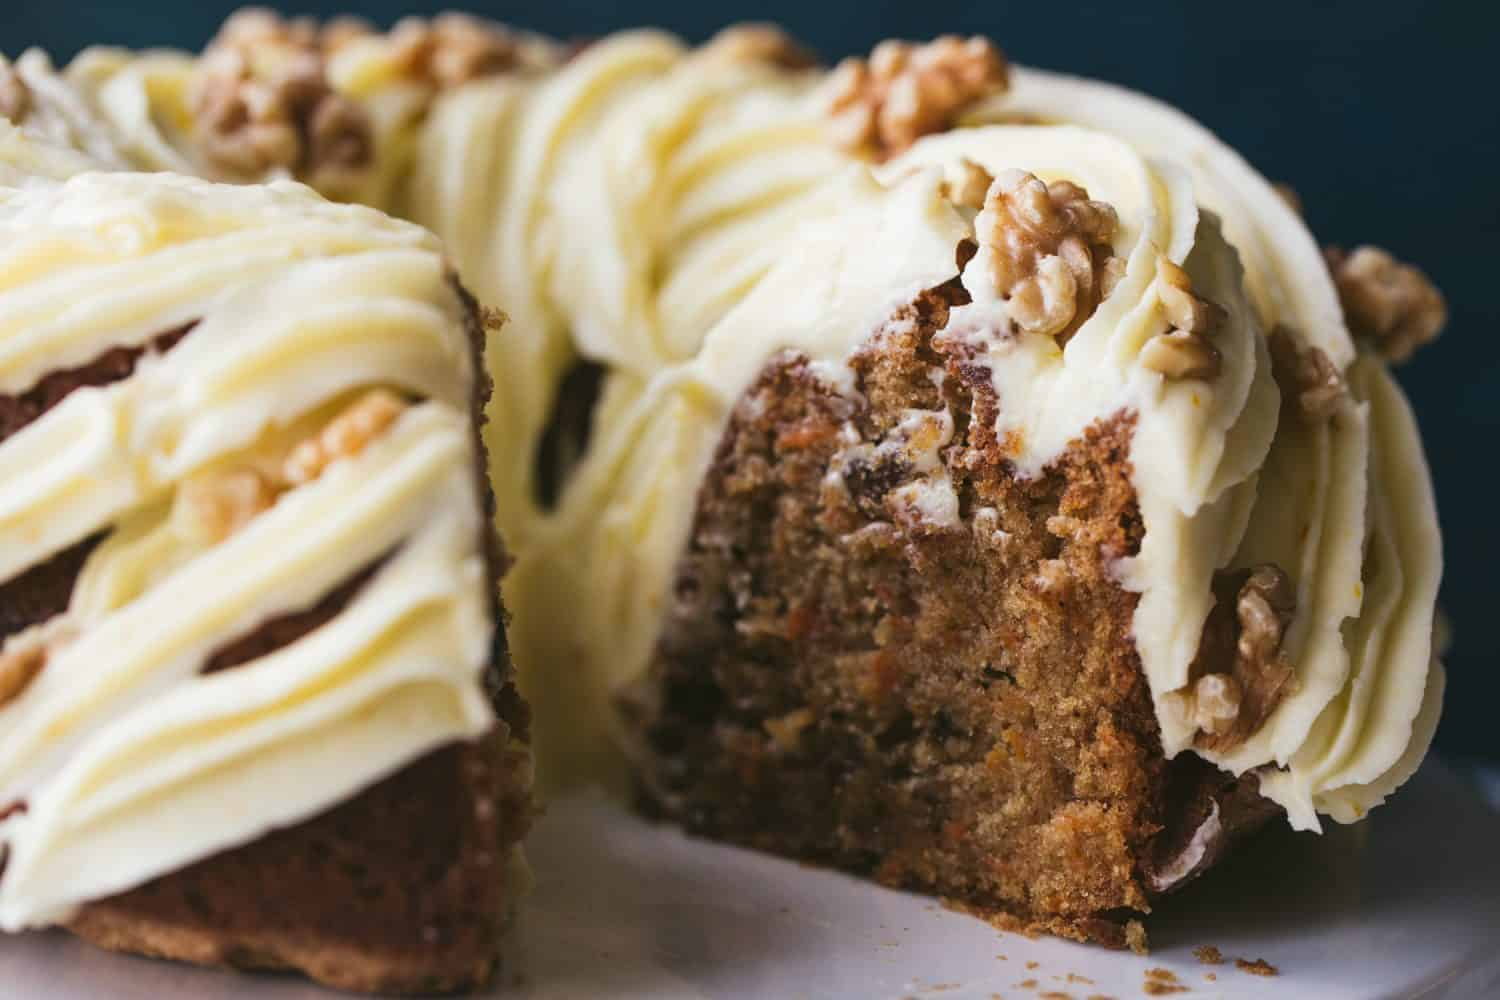 The inside of a carrot cake.